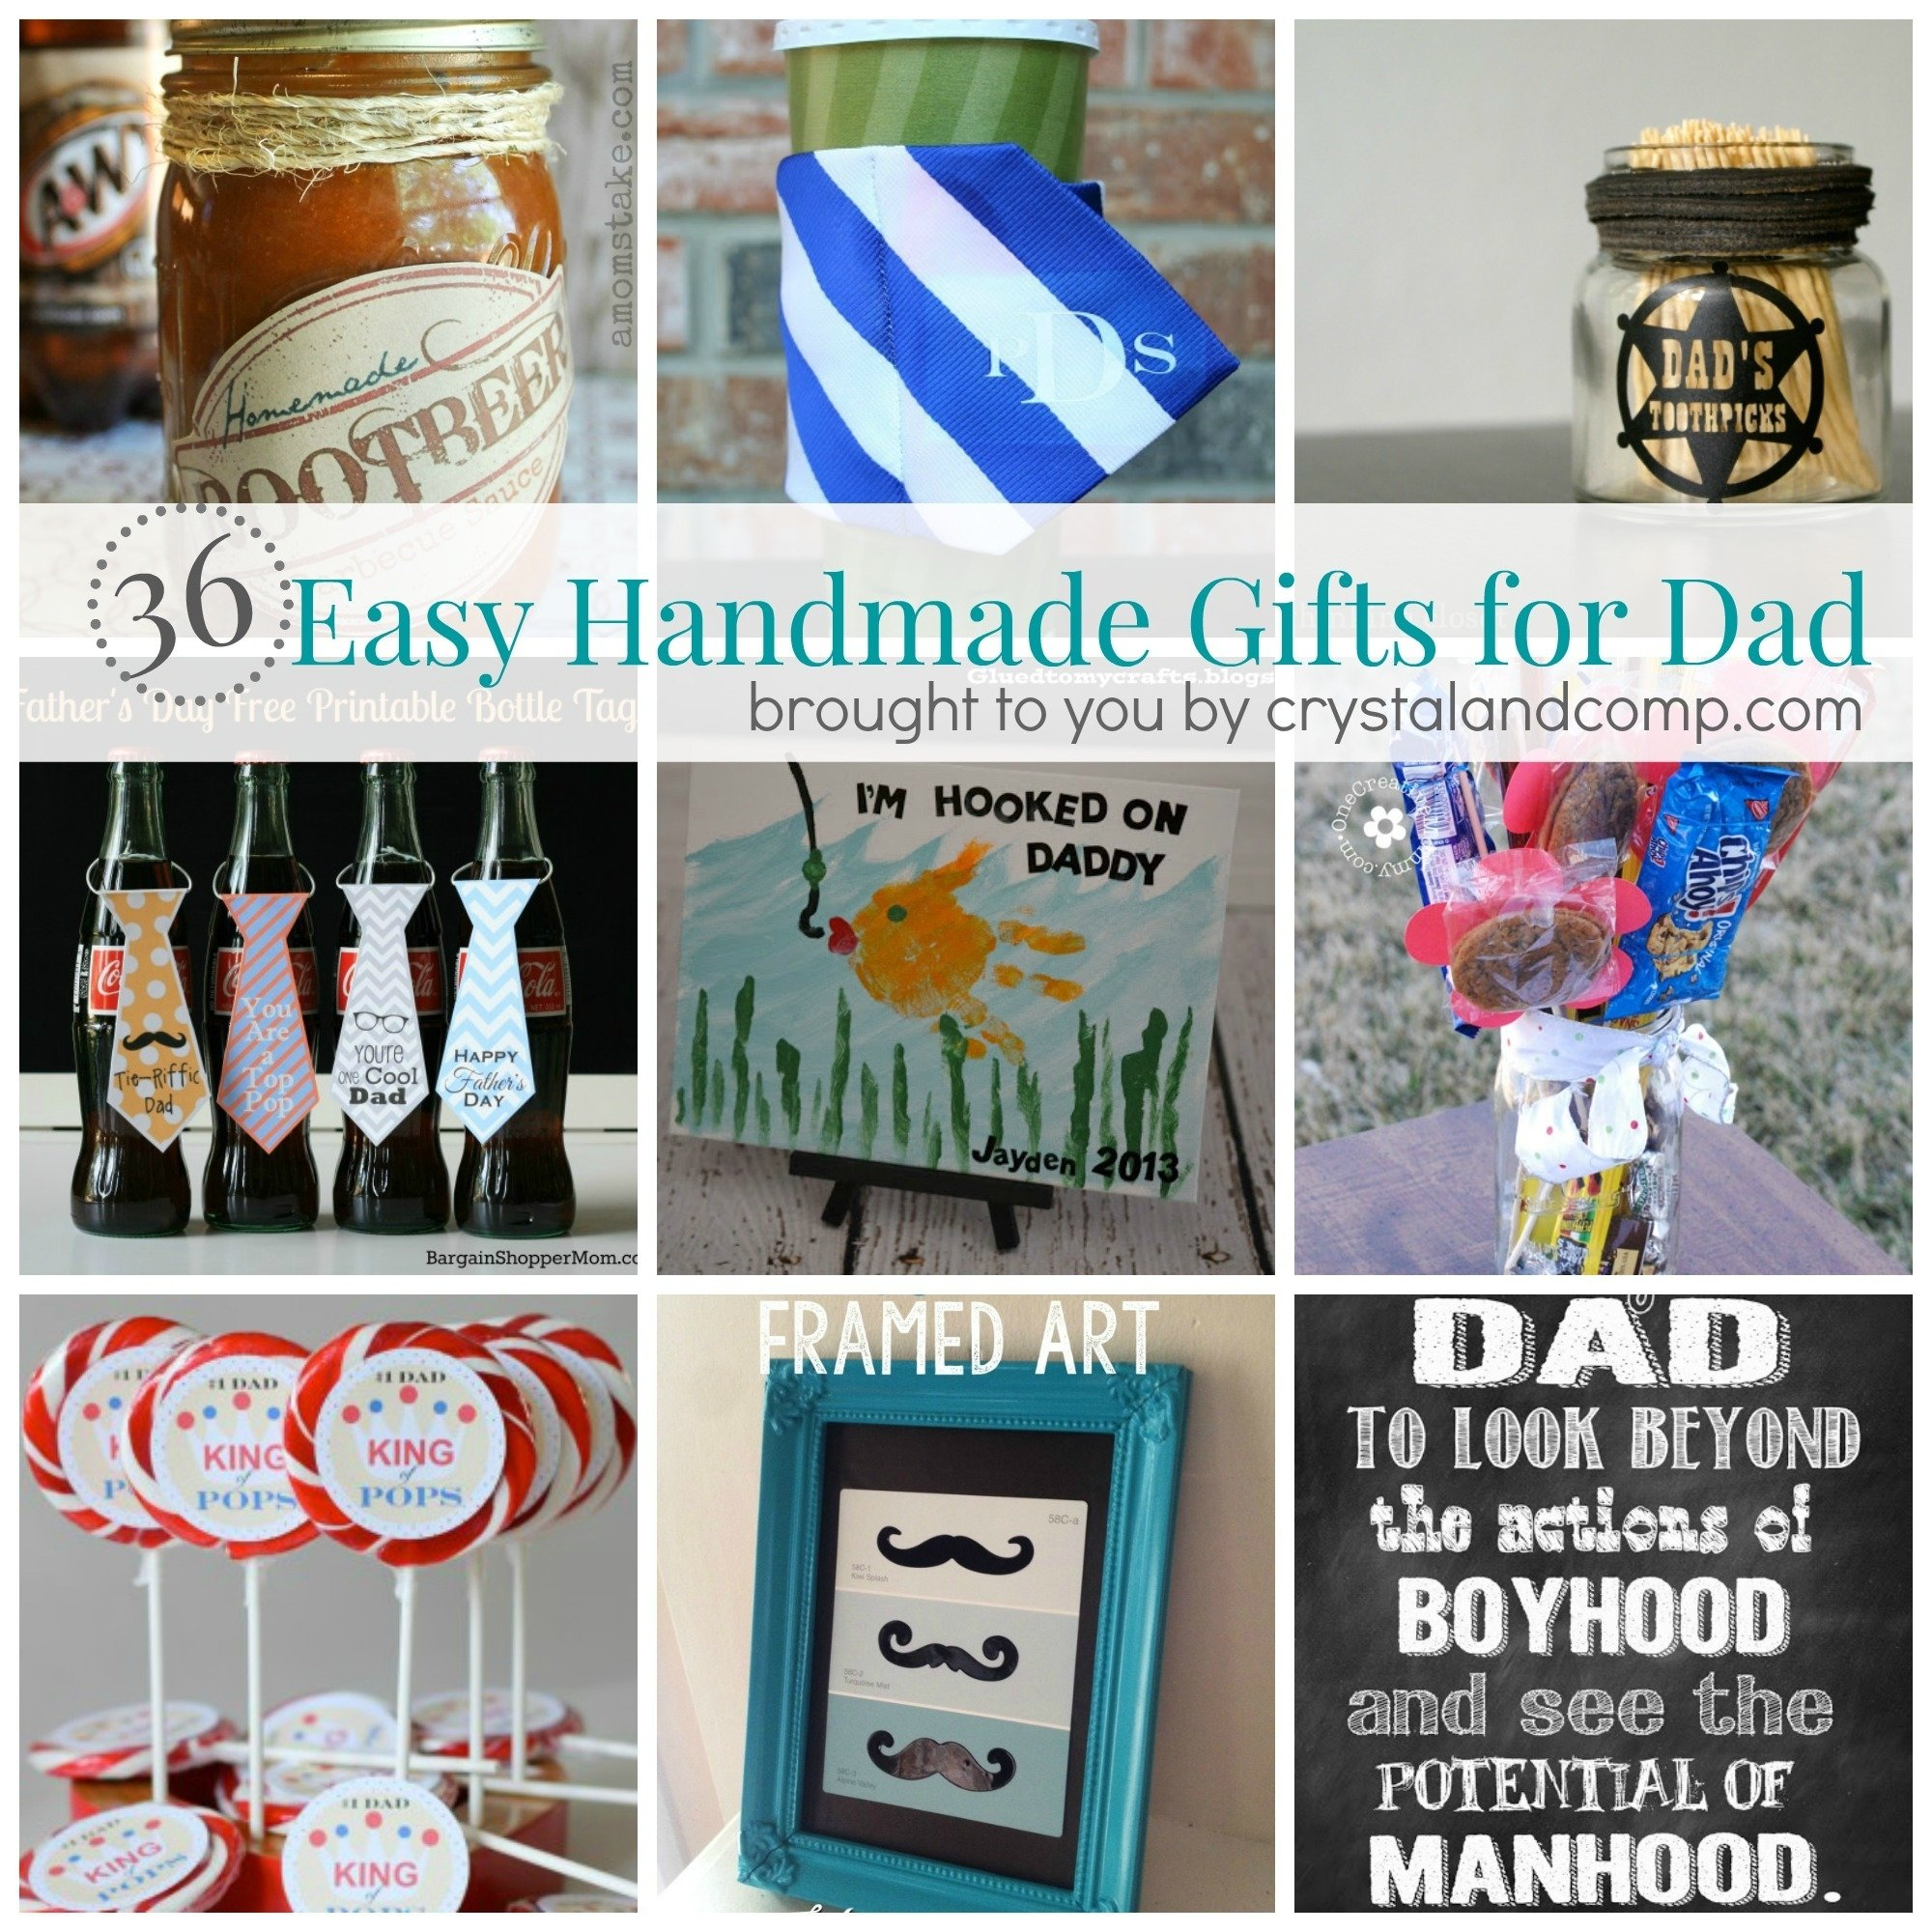 36 easy handmade gift ideas for dad | easy homemade gifts, dads and